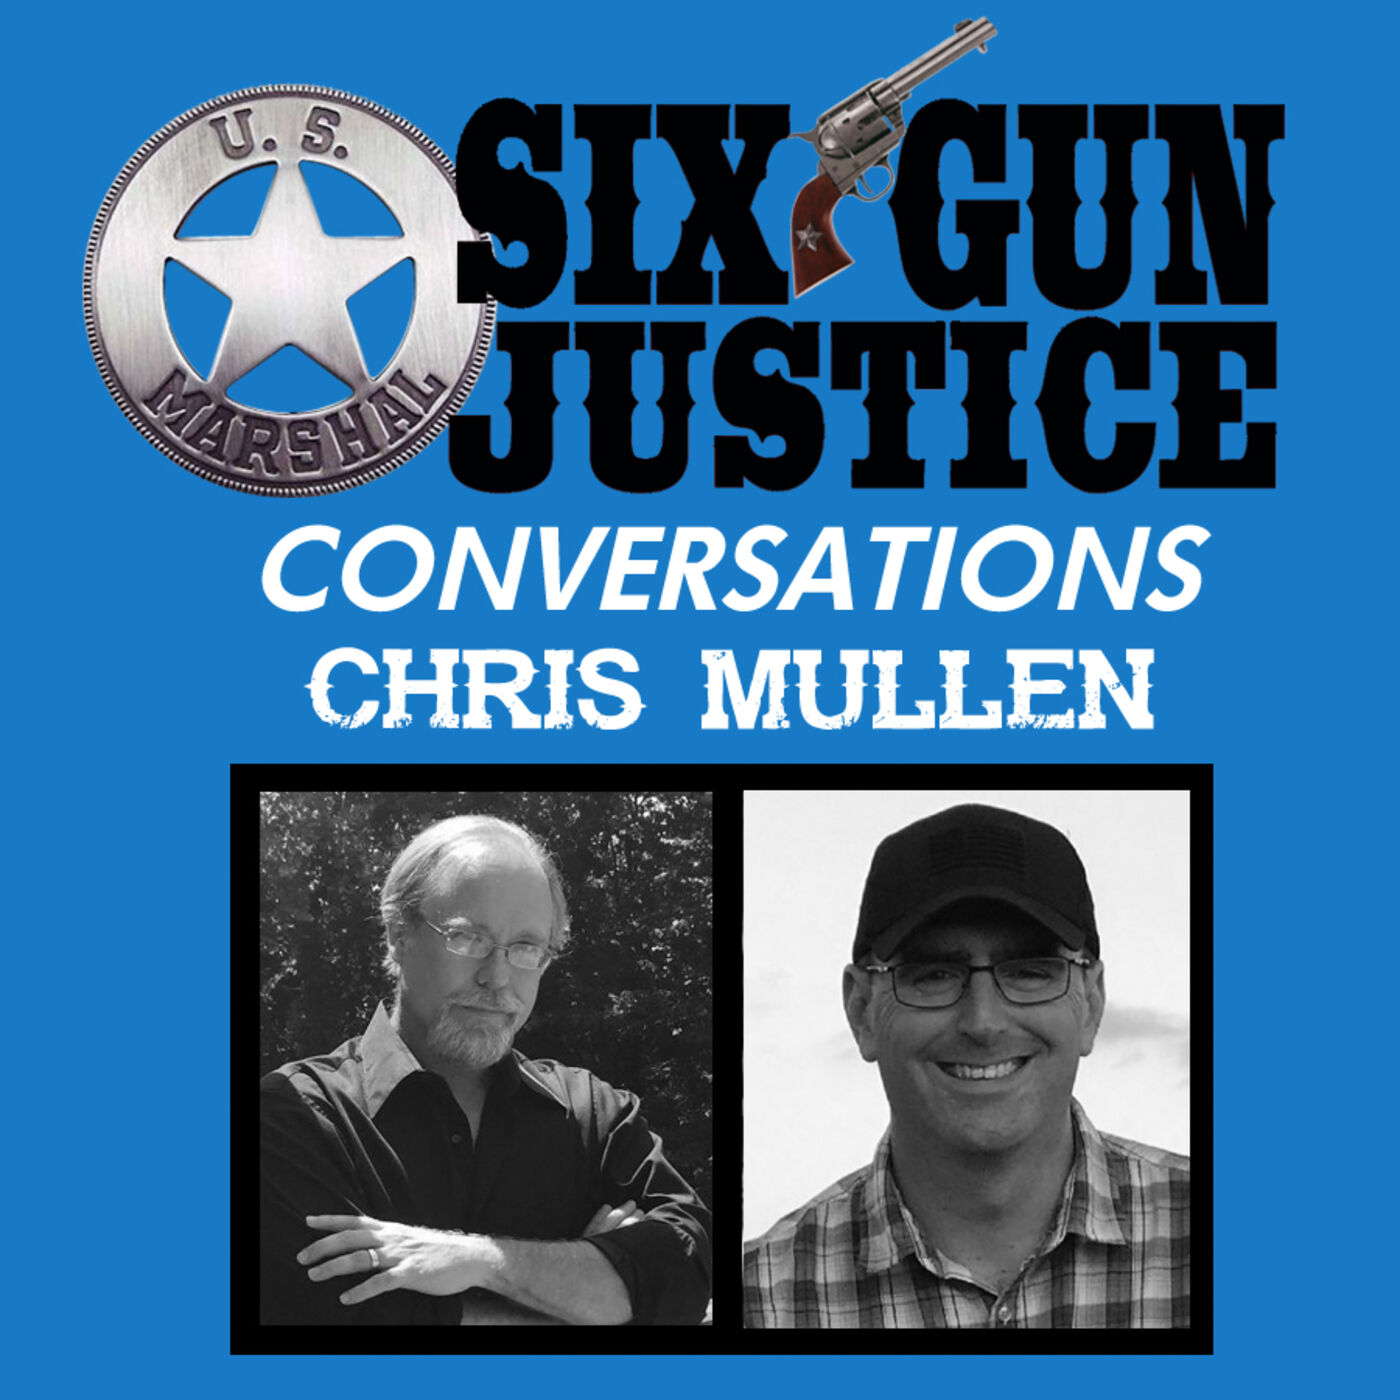 SIX-GUN JUSTICE CONVERSATIONS—CHRIS MULLEN